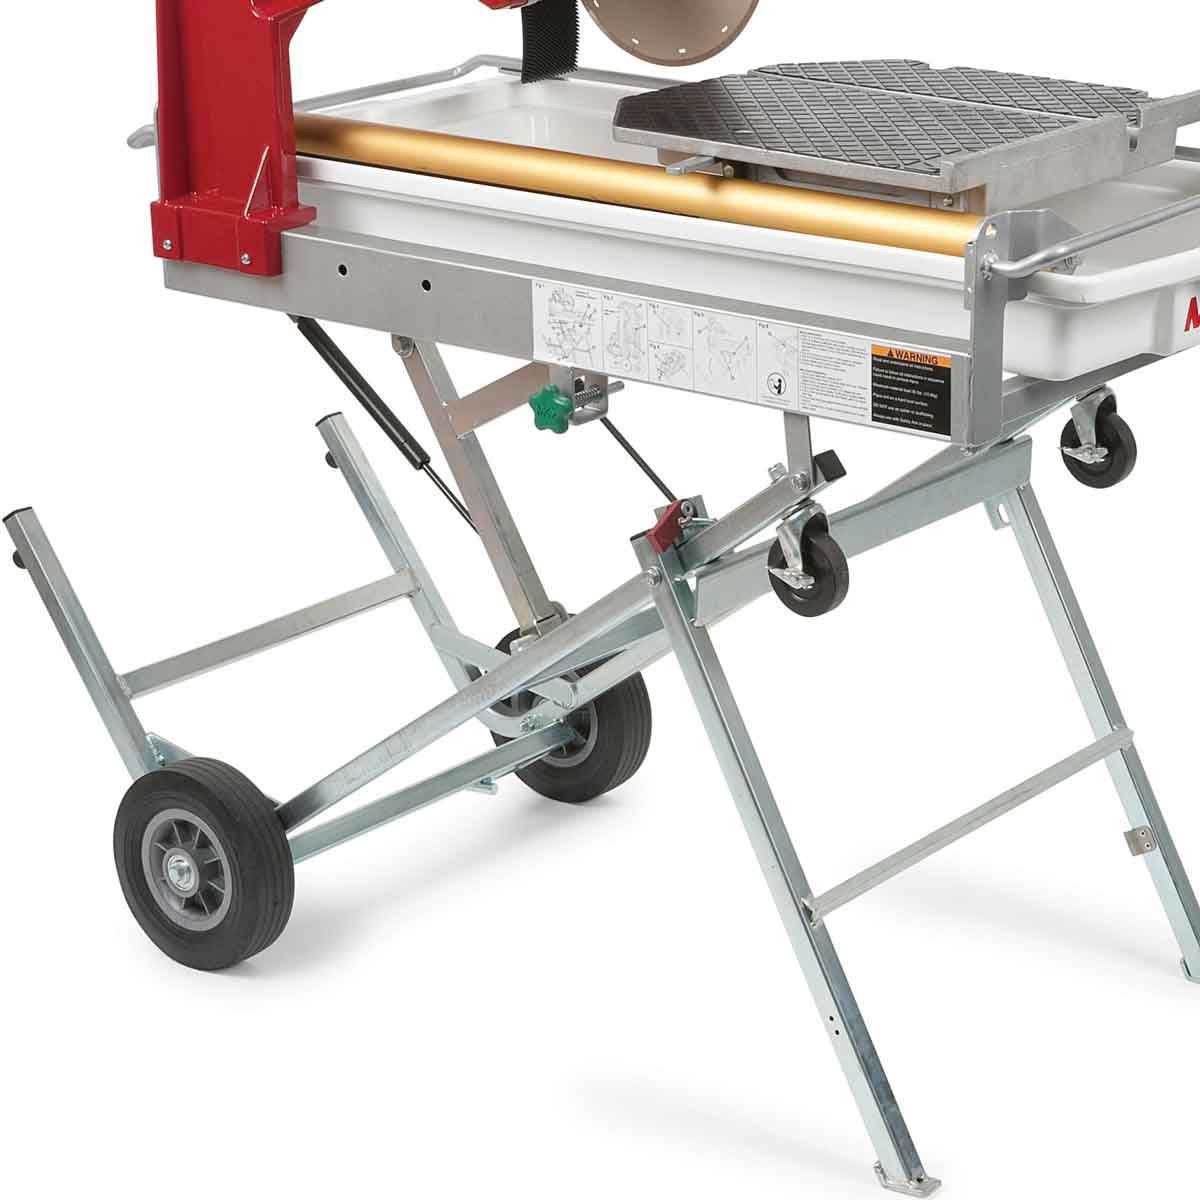 Built in Stand on MK-101 Pro24 JCS Tile Saw